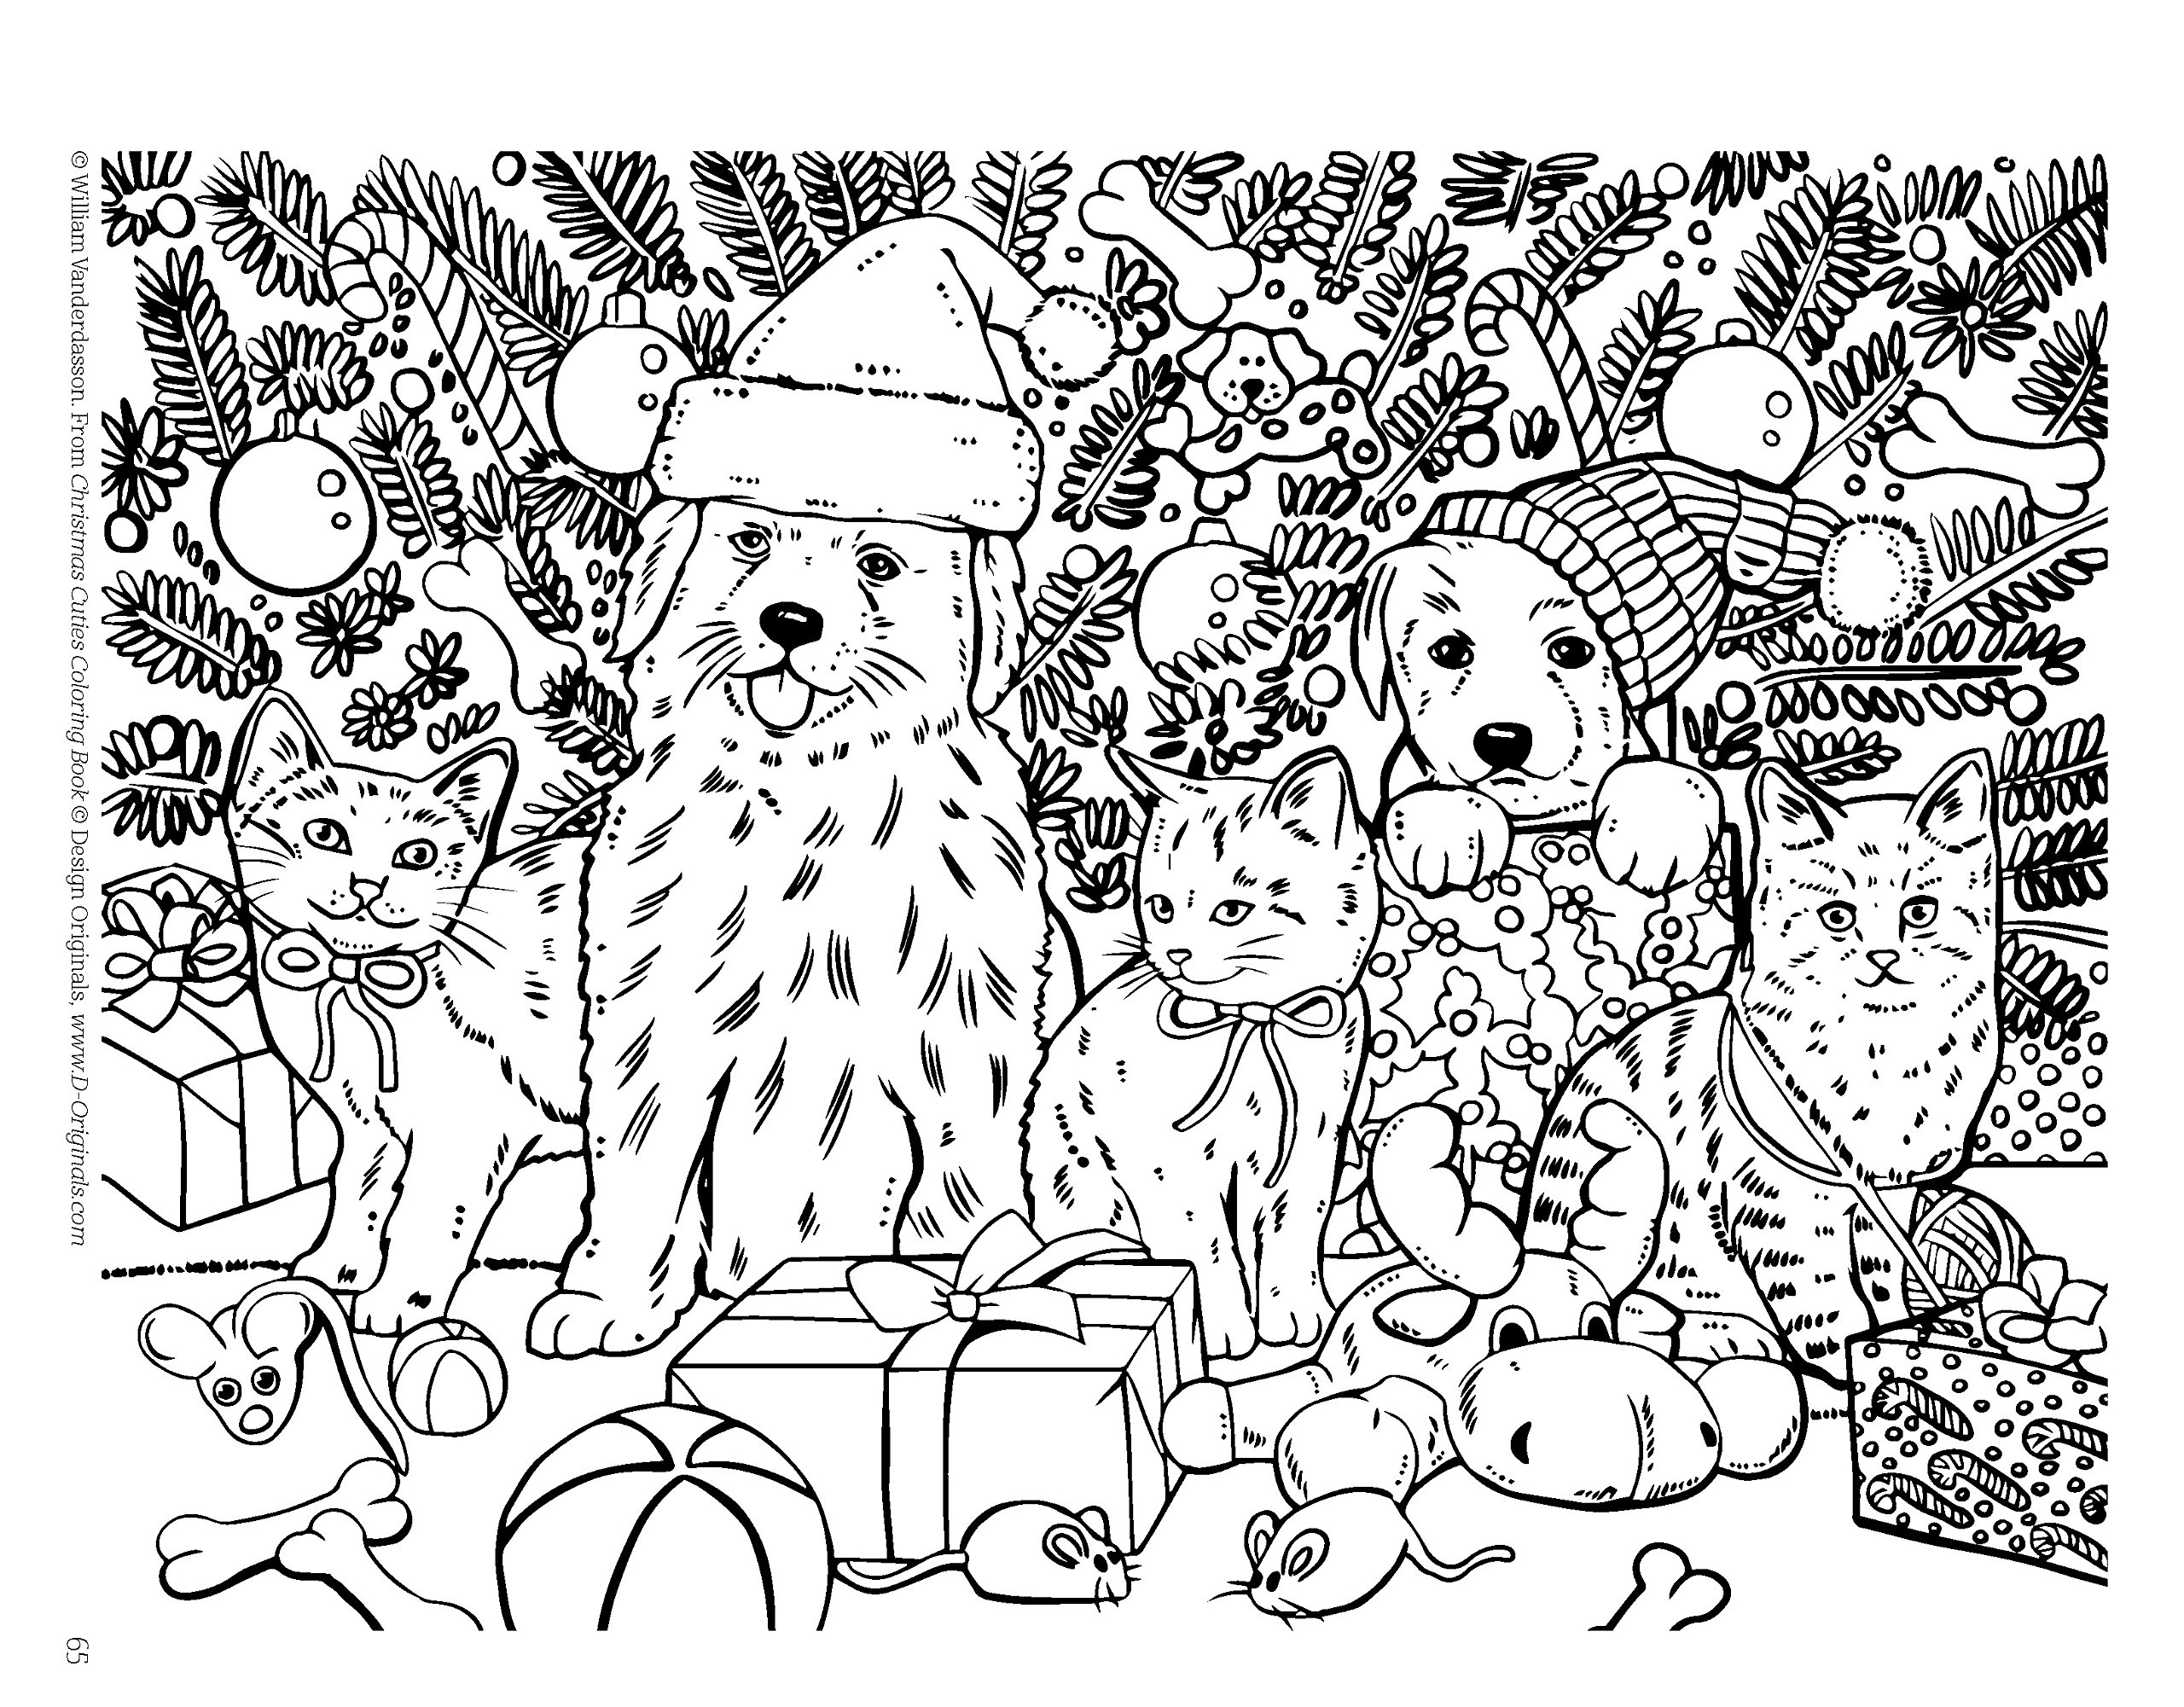 Coloring book download zip - Amazon Com Christmas Cuties Coloring Book Design Originals Dozens Of Puppies Kittens In Festive Holiday Settings One Side Only Designs On Extra Thick